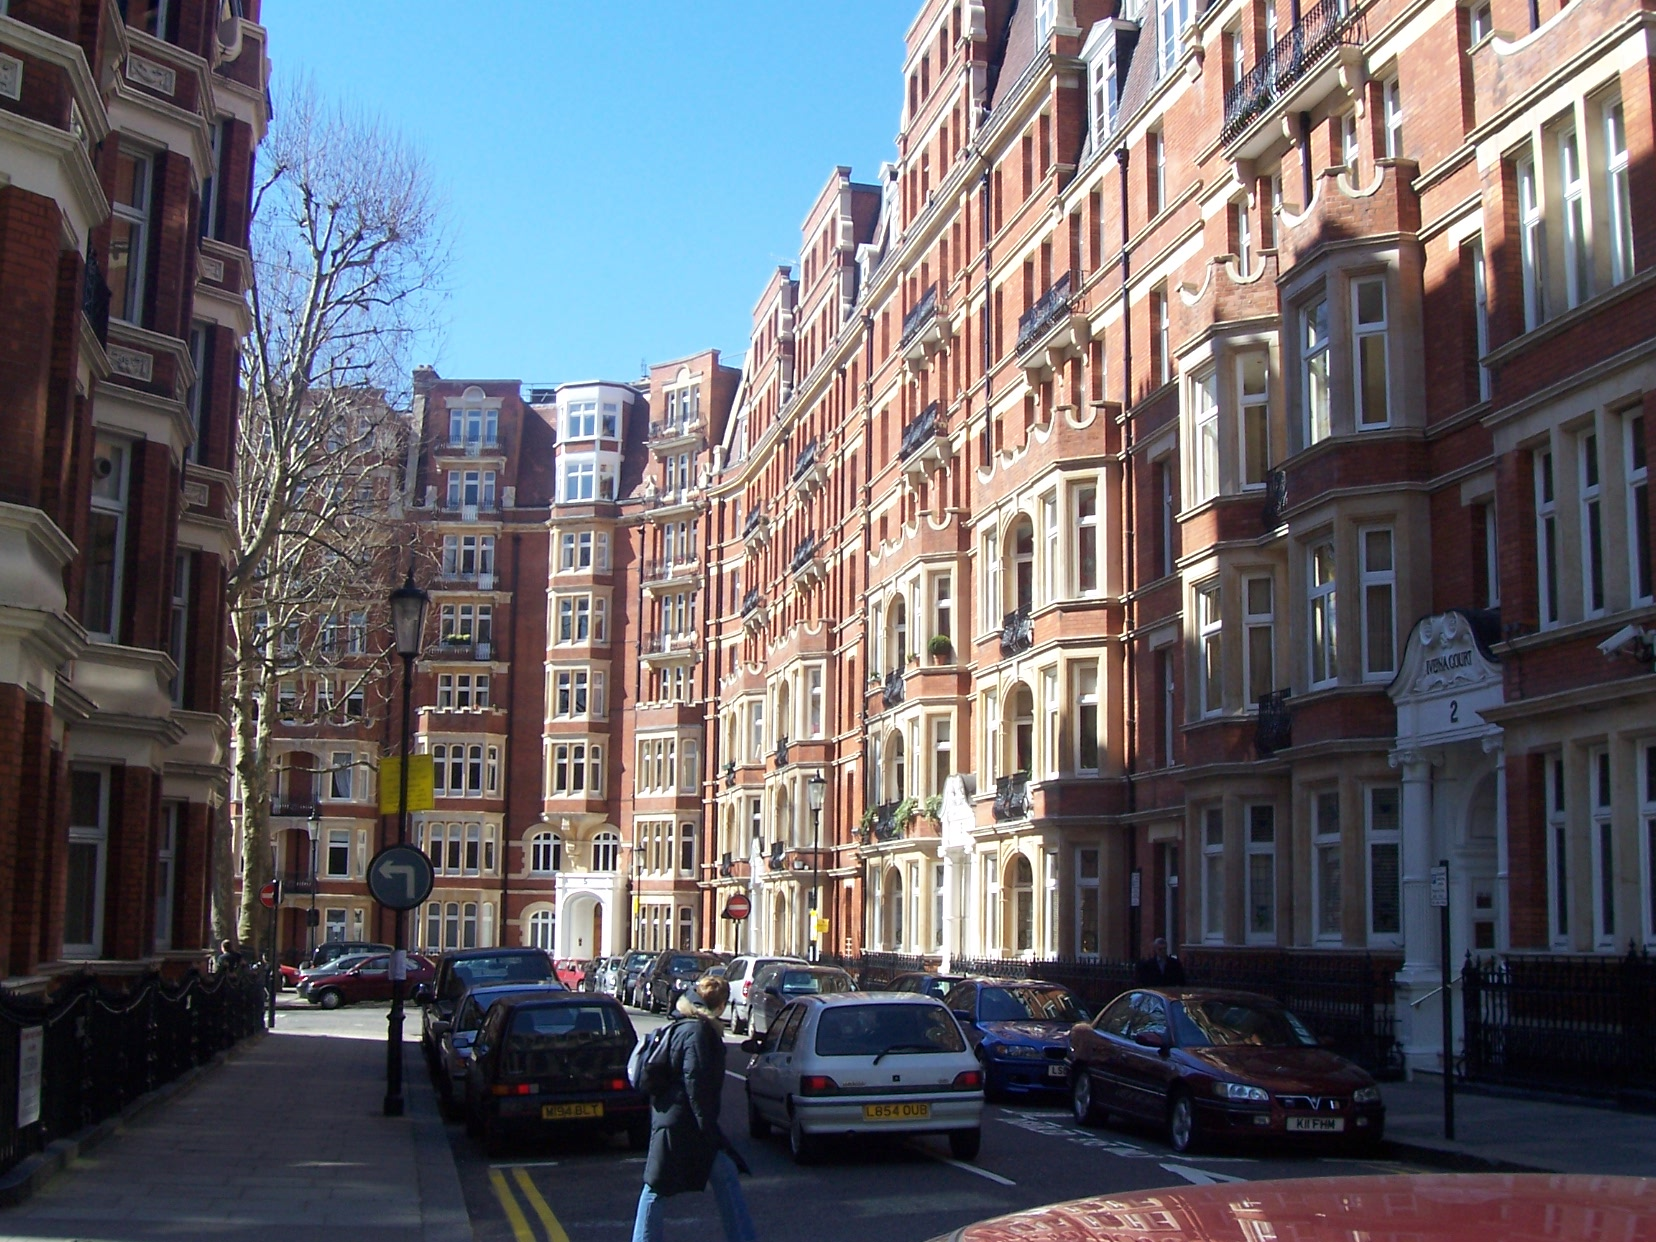 kensington_buildings